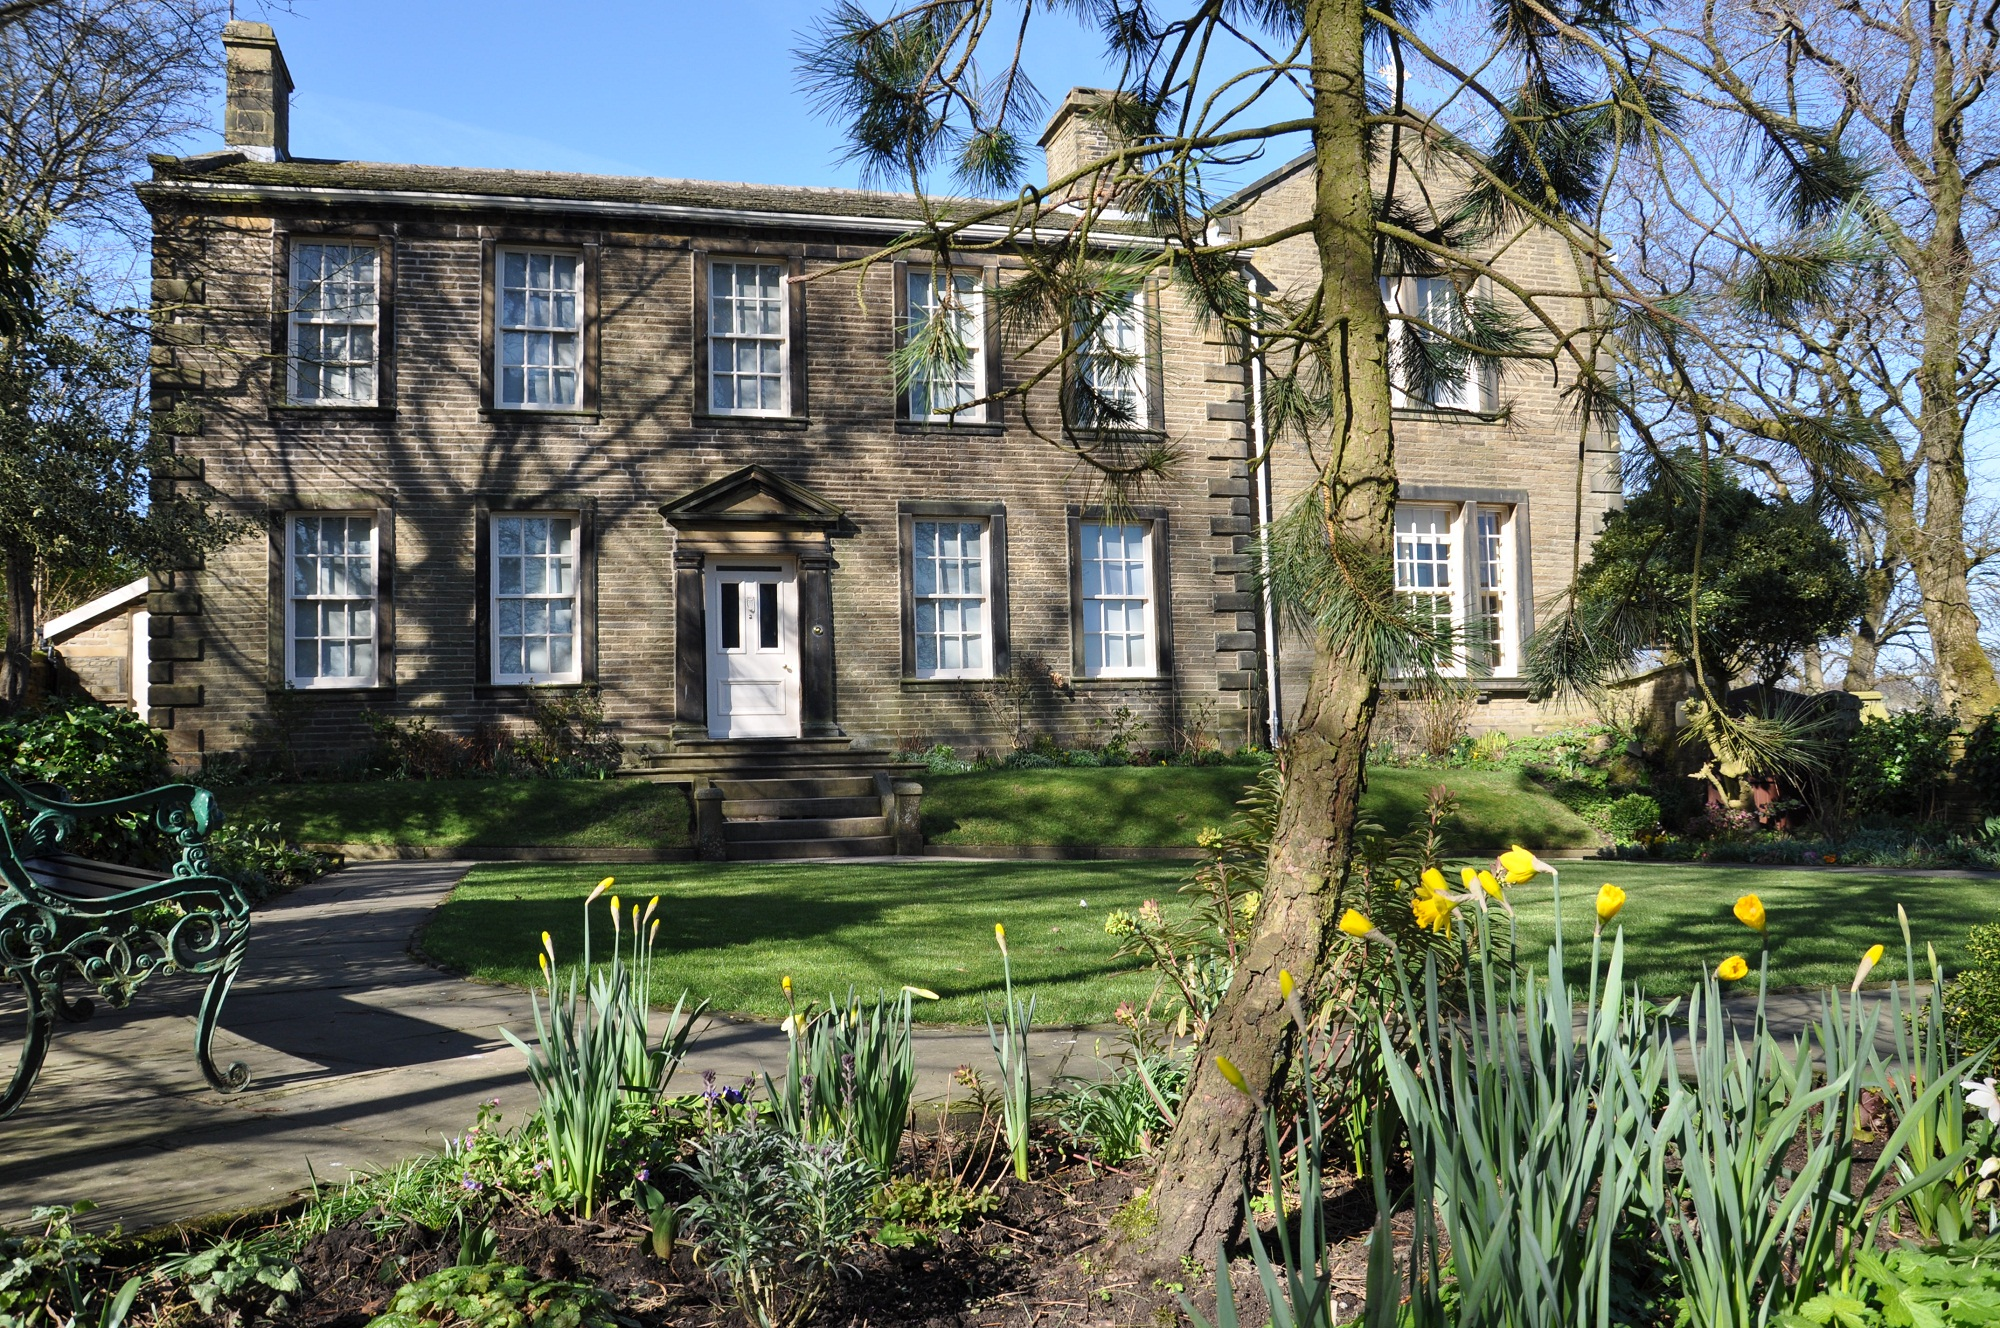 Haworth Bronte Parsonage Museum, which is advertising for three new jobs